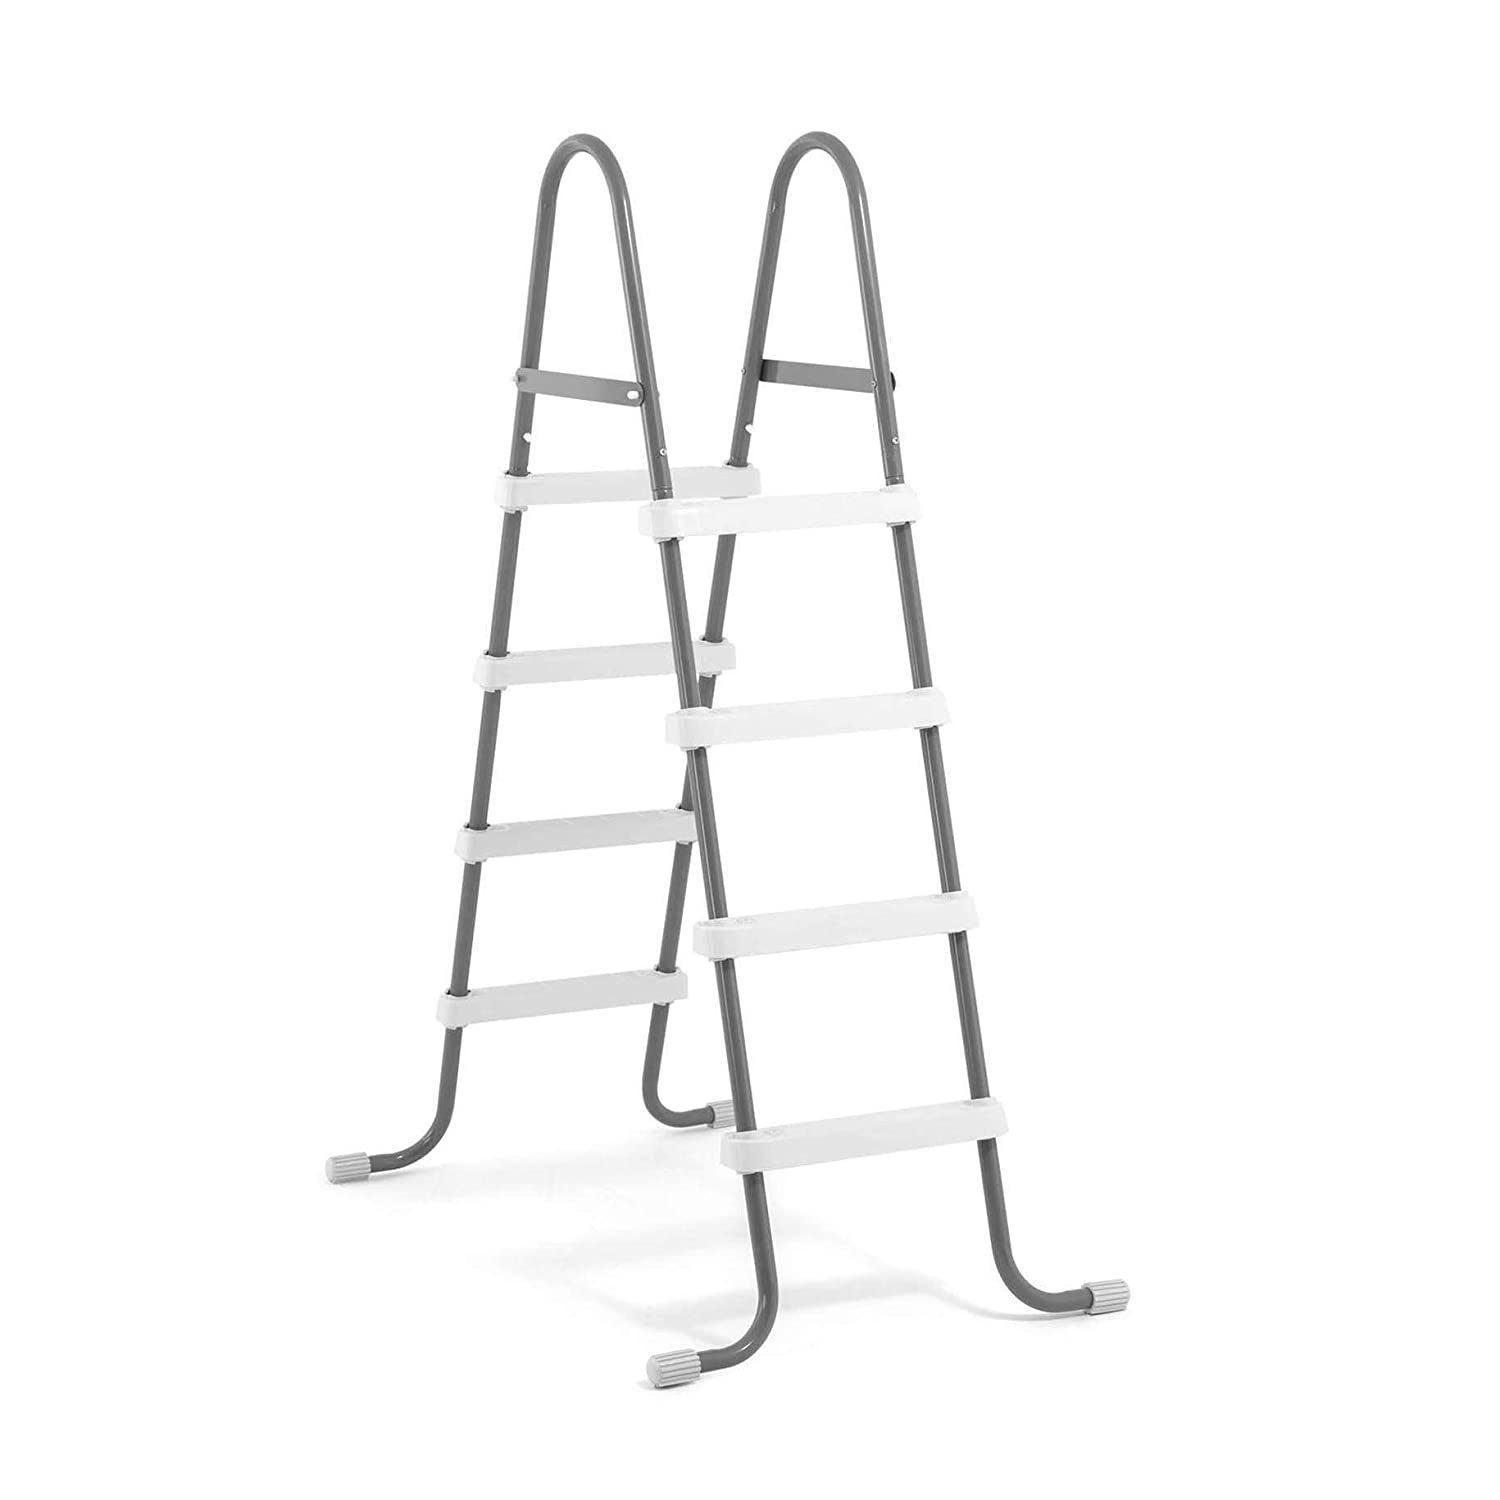 Intex 28066E Steel Frame Swimming Pool Ladder 48 Inch Wall Height Pools